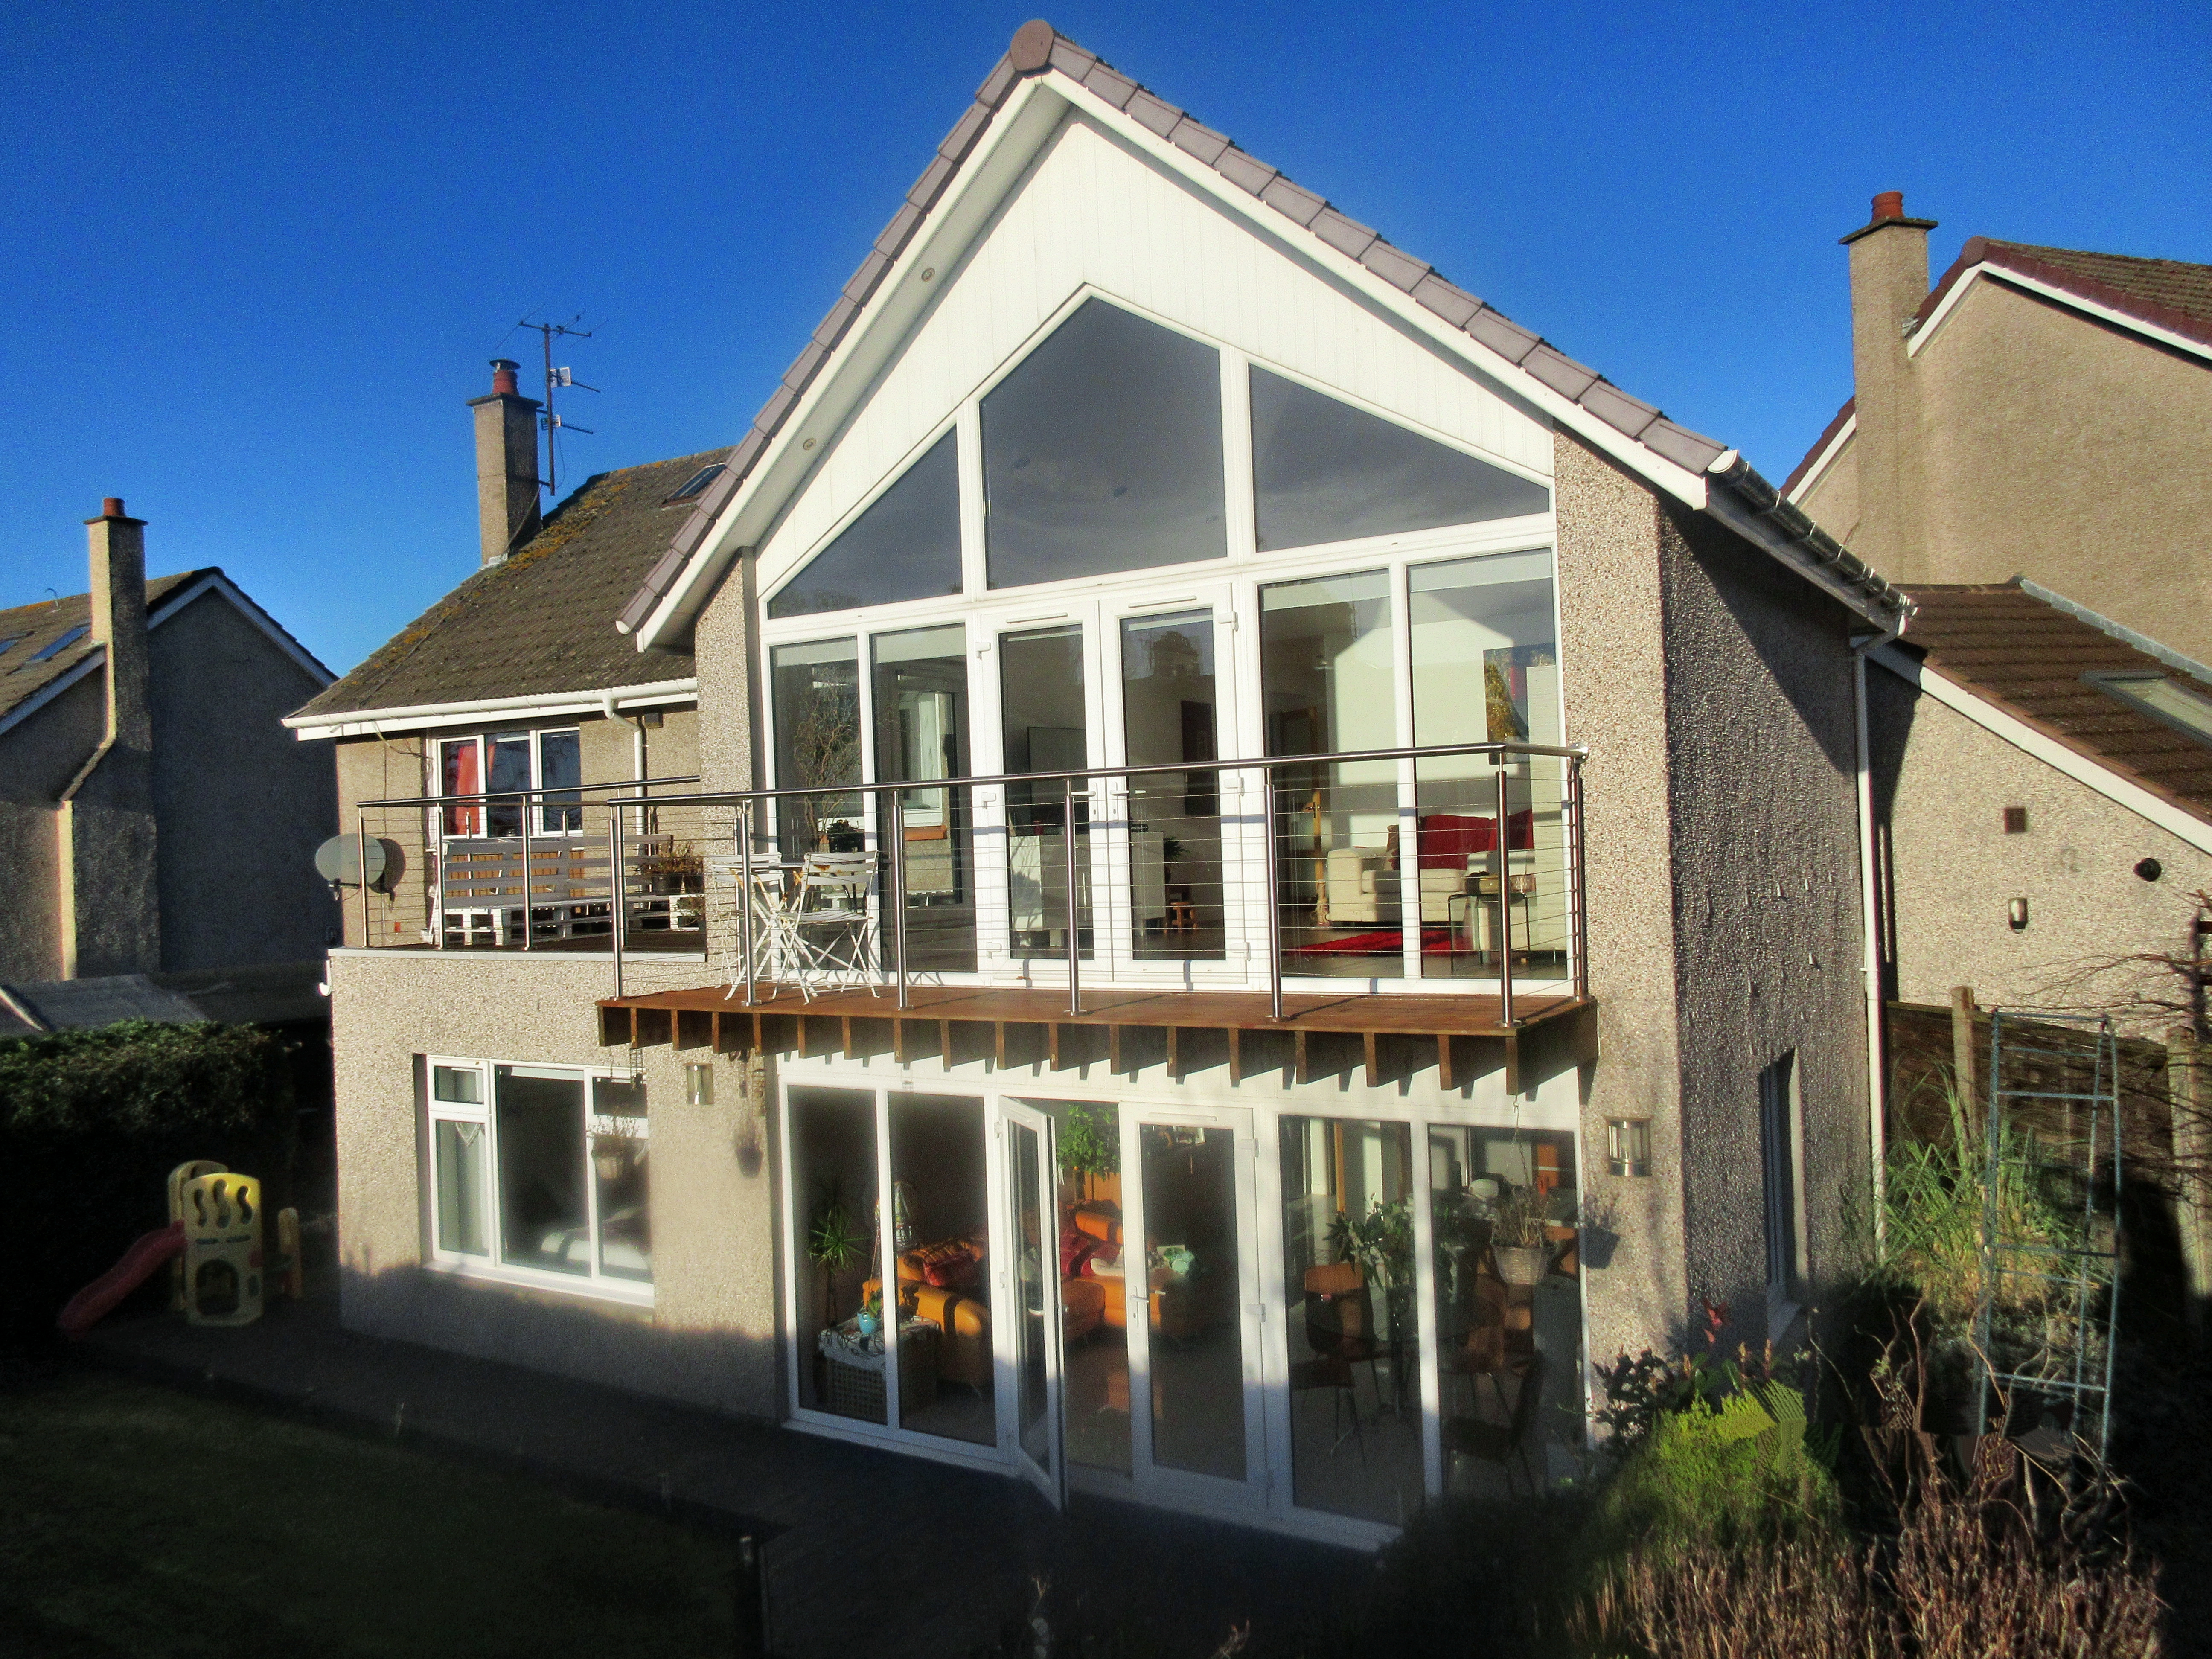 11 Albany Place, Broughty Ferry, Dundee, DD5 1NR